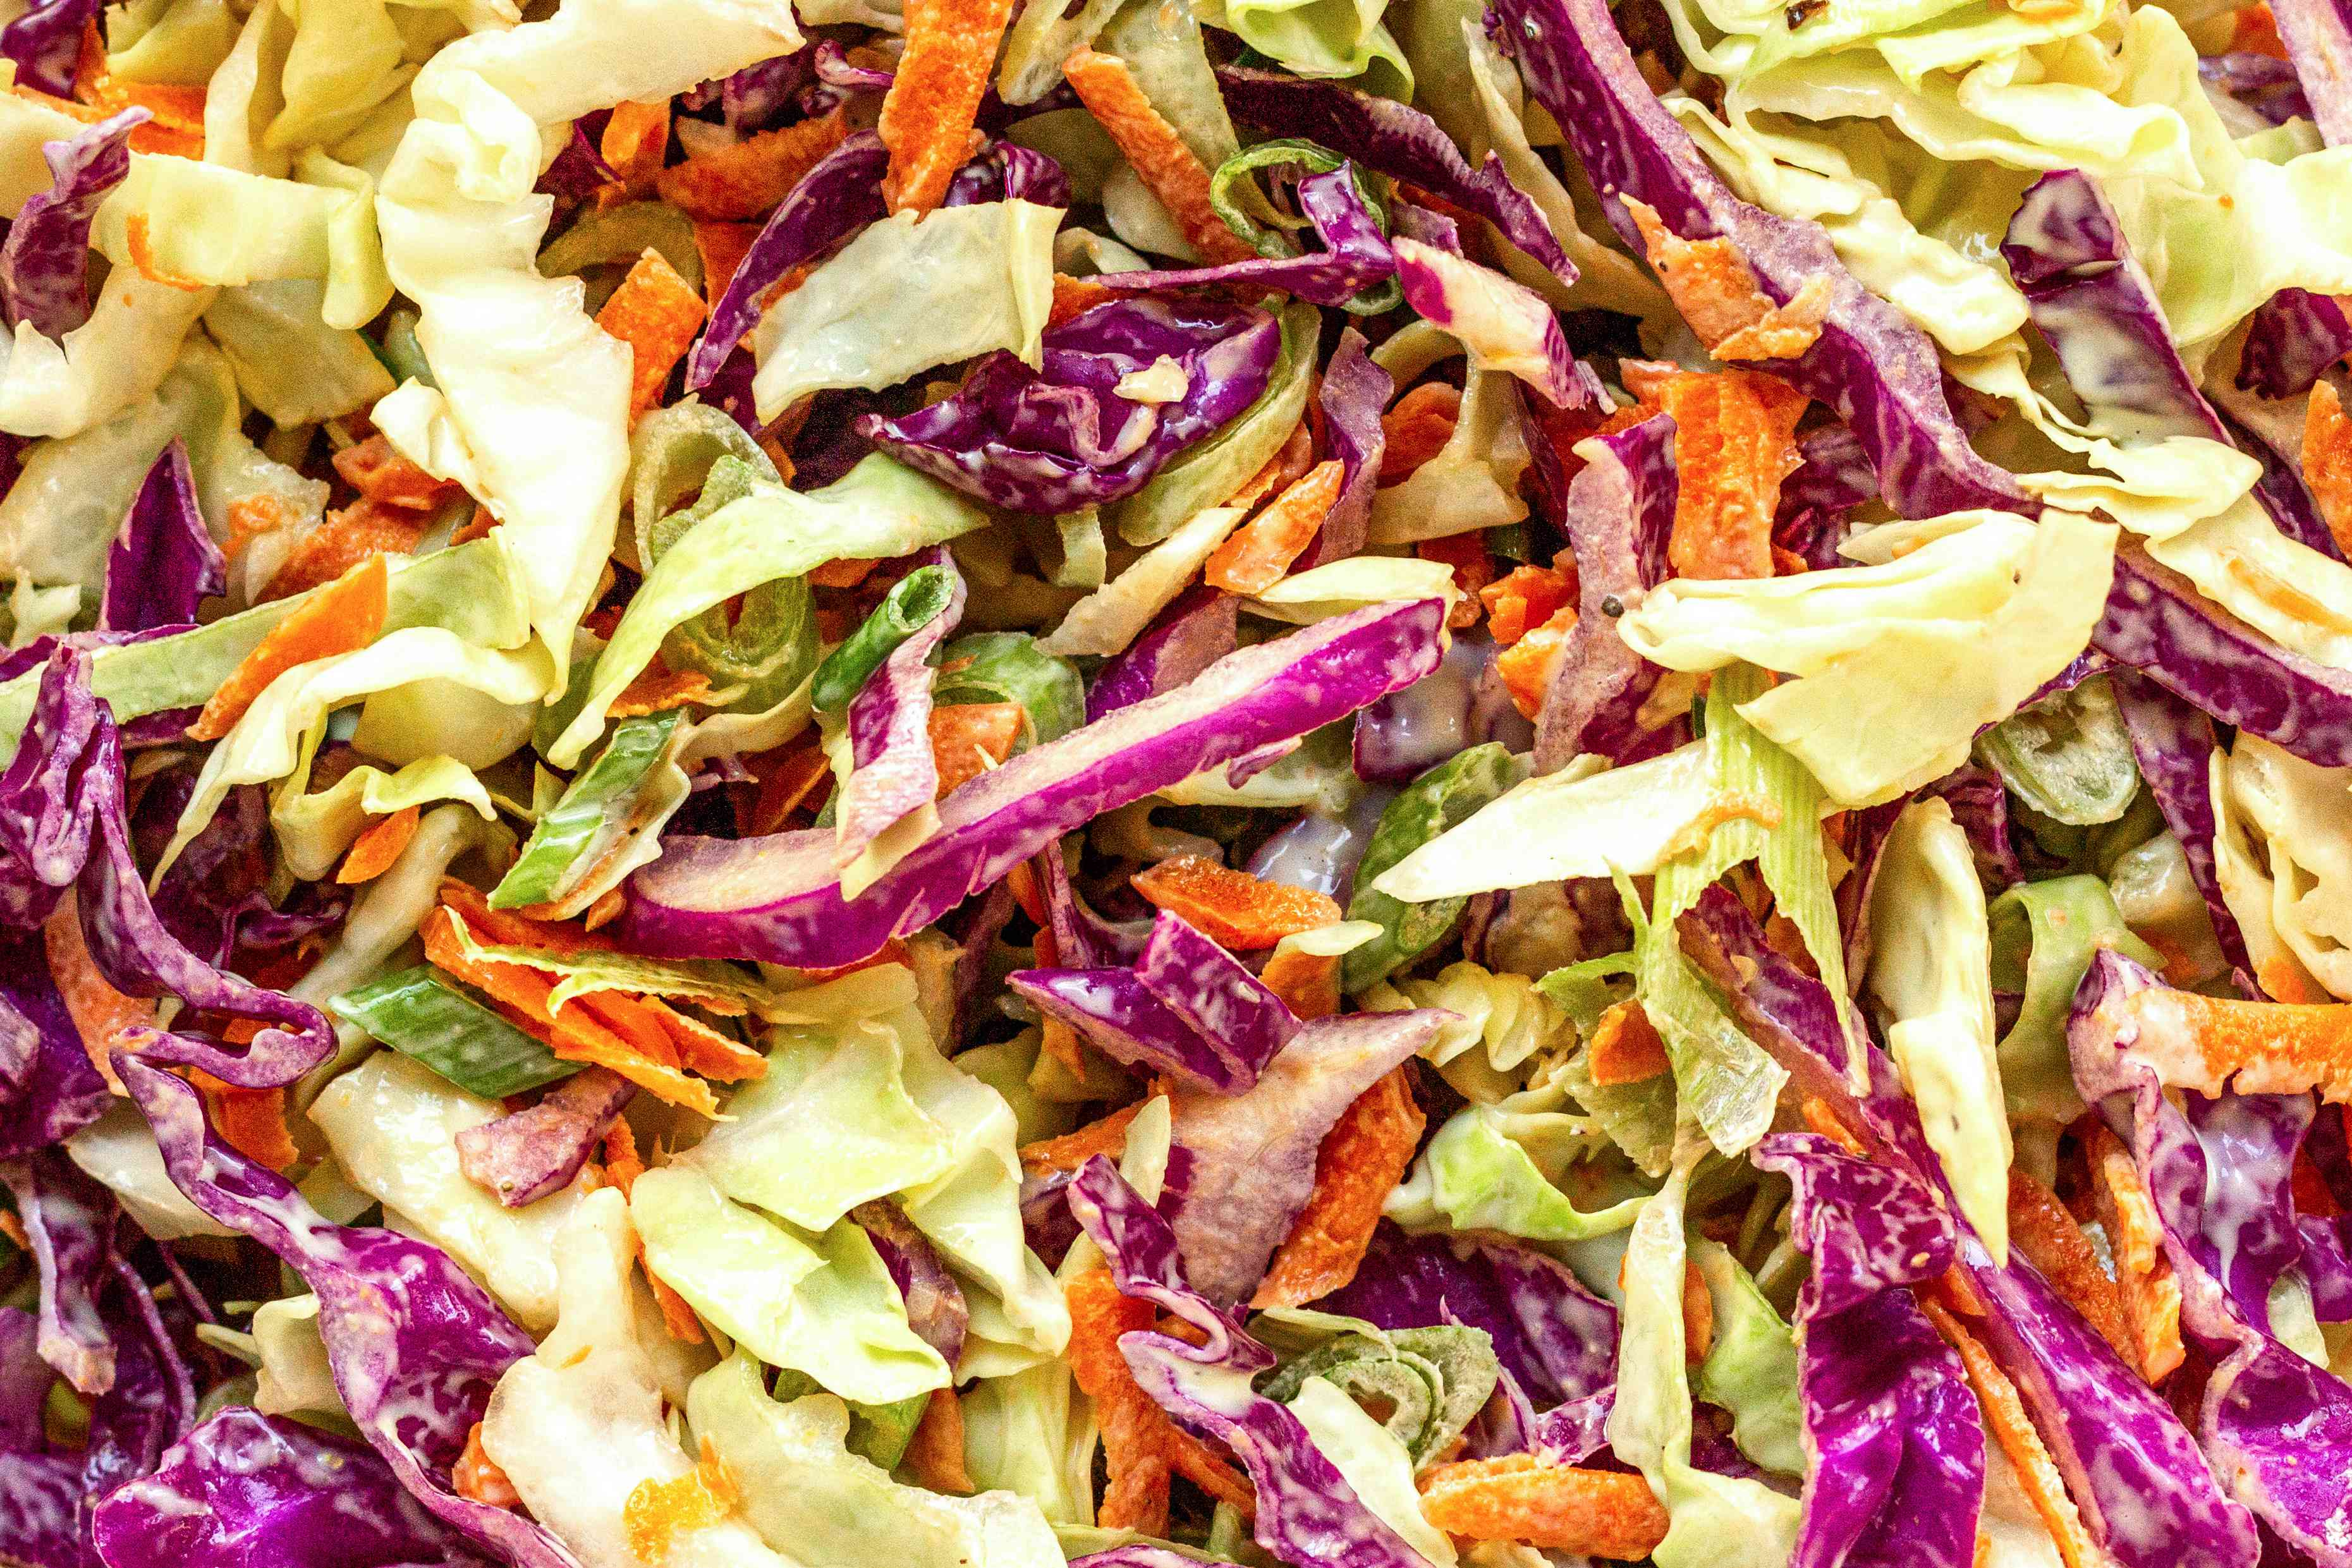 Sliced cabbage and carrots mixed to make Classic Coleslaw.